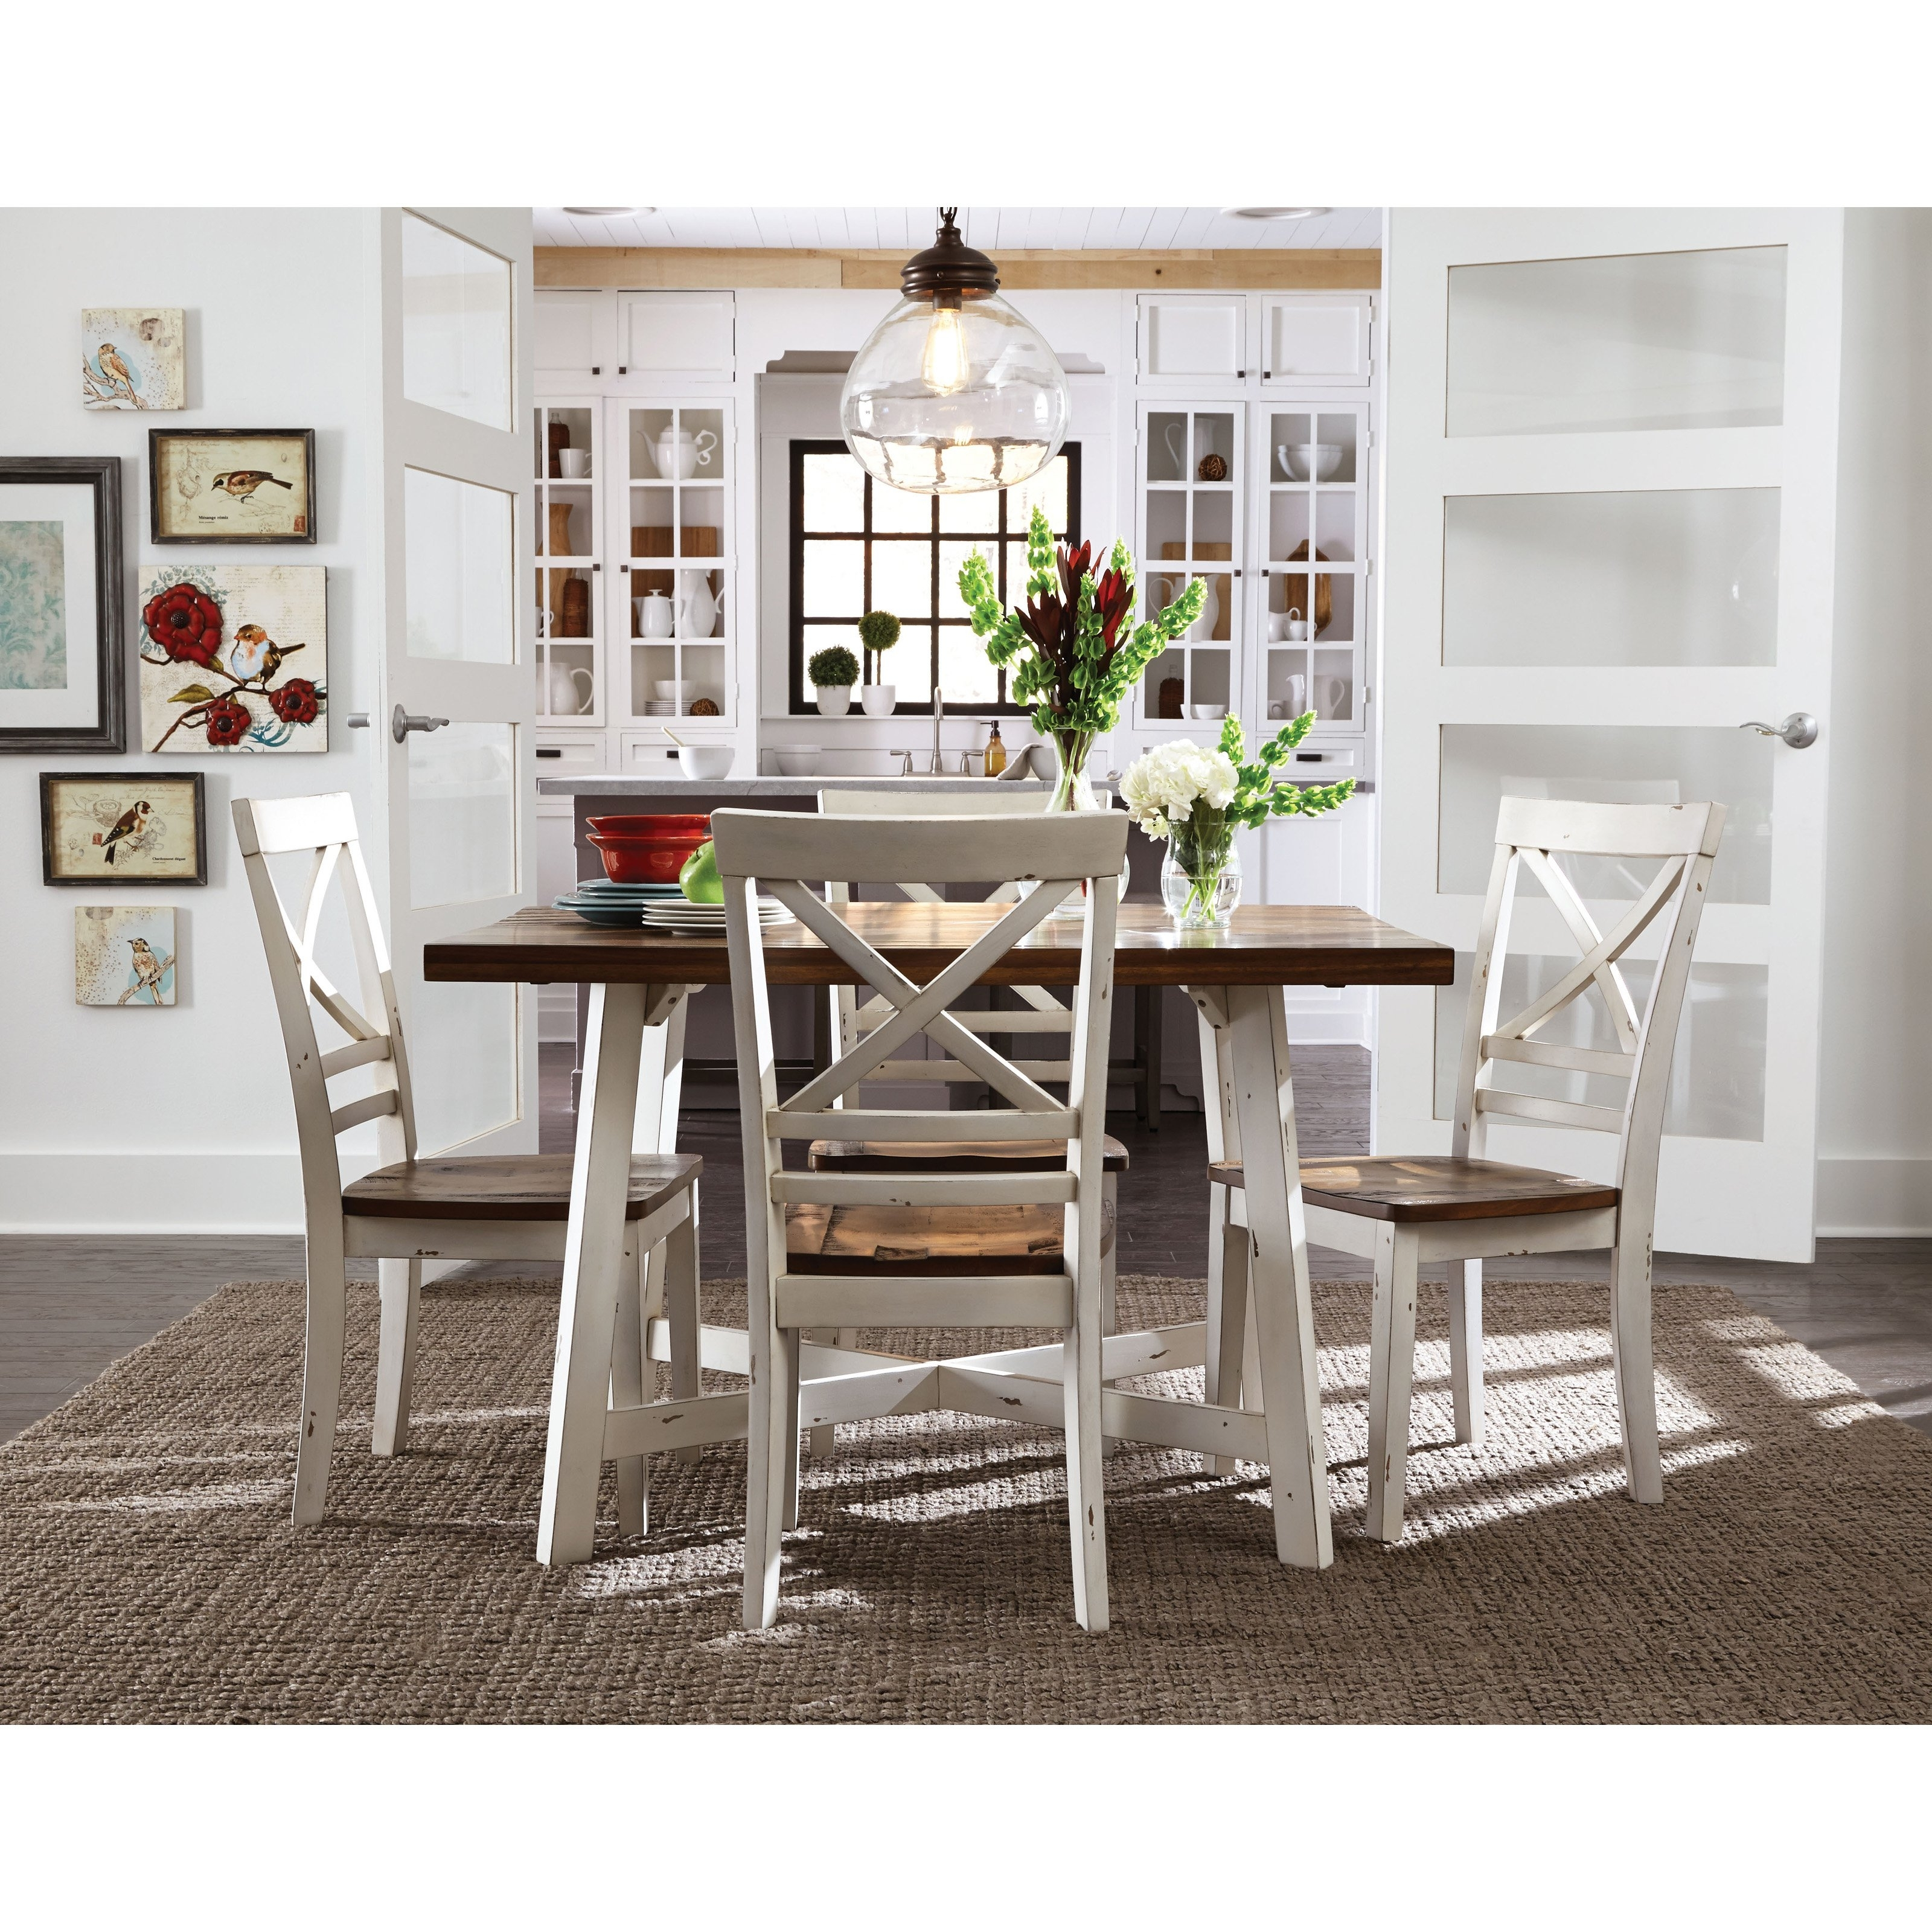 Standard Furniture Amelia 5 Piece Dining Table Set | Hayneedle In Most Popular Market 5 Piece Counter Sets (Image 19 of 20)